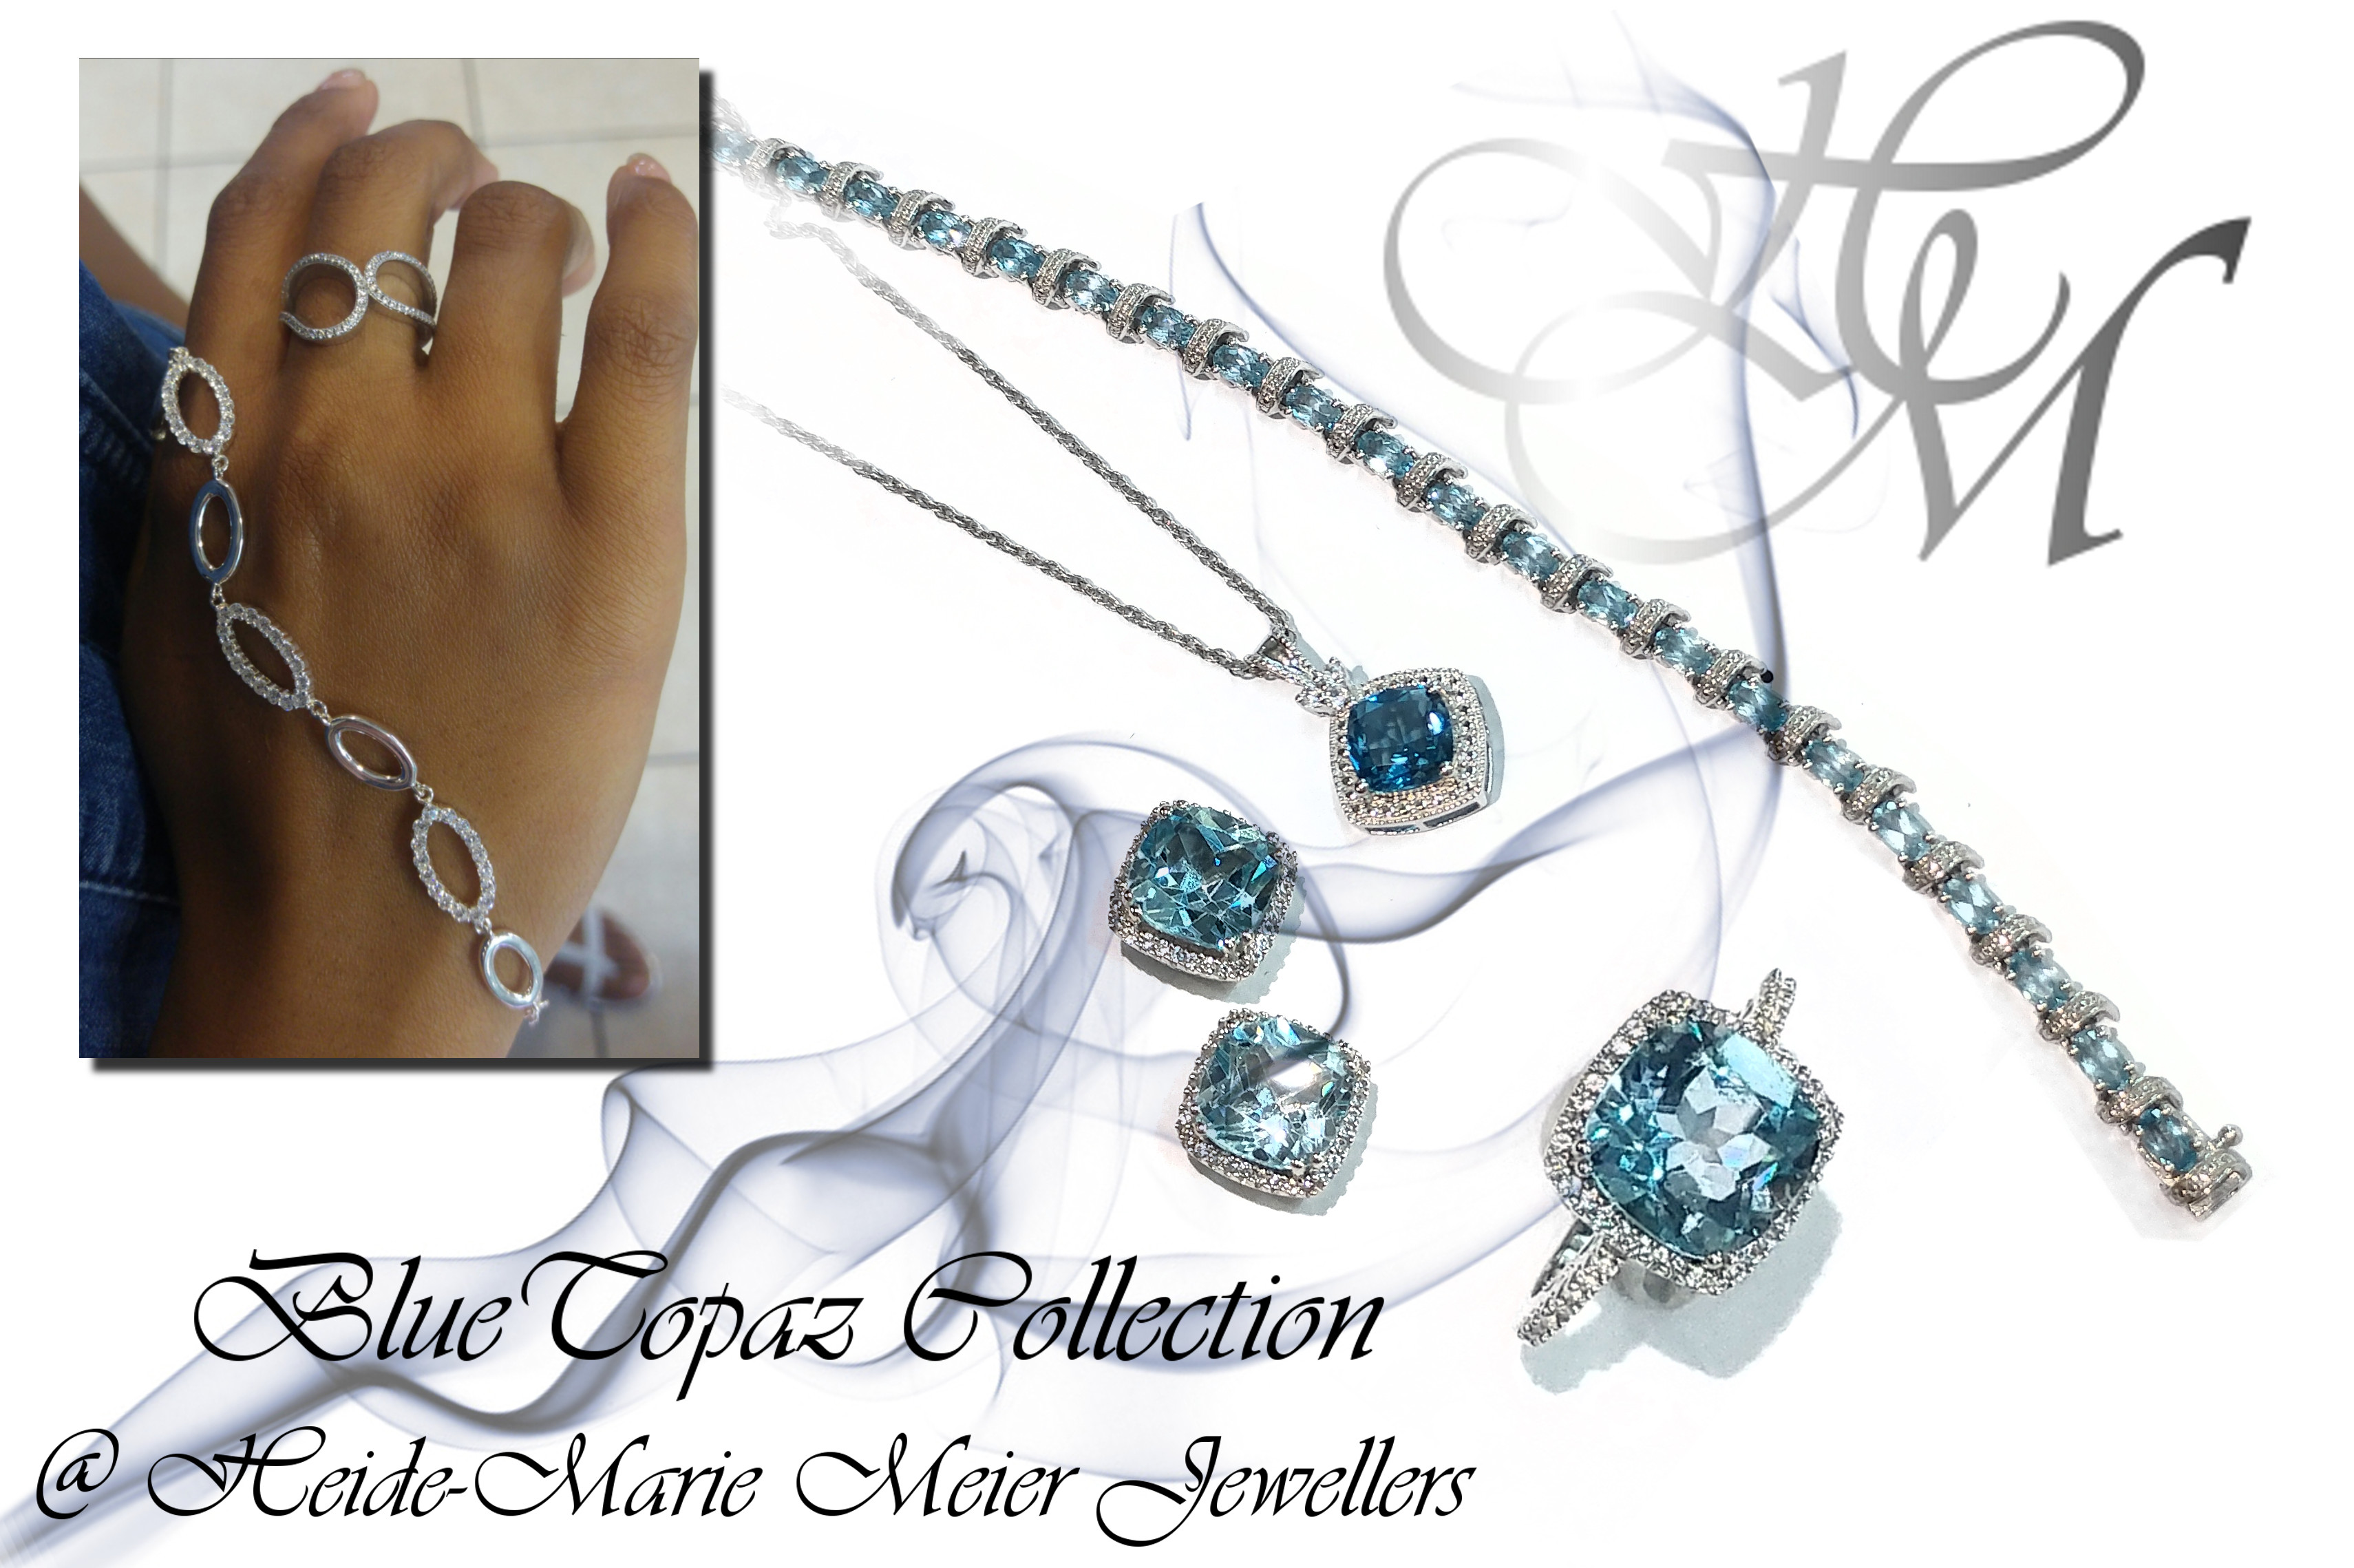 Blue topaz collection